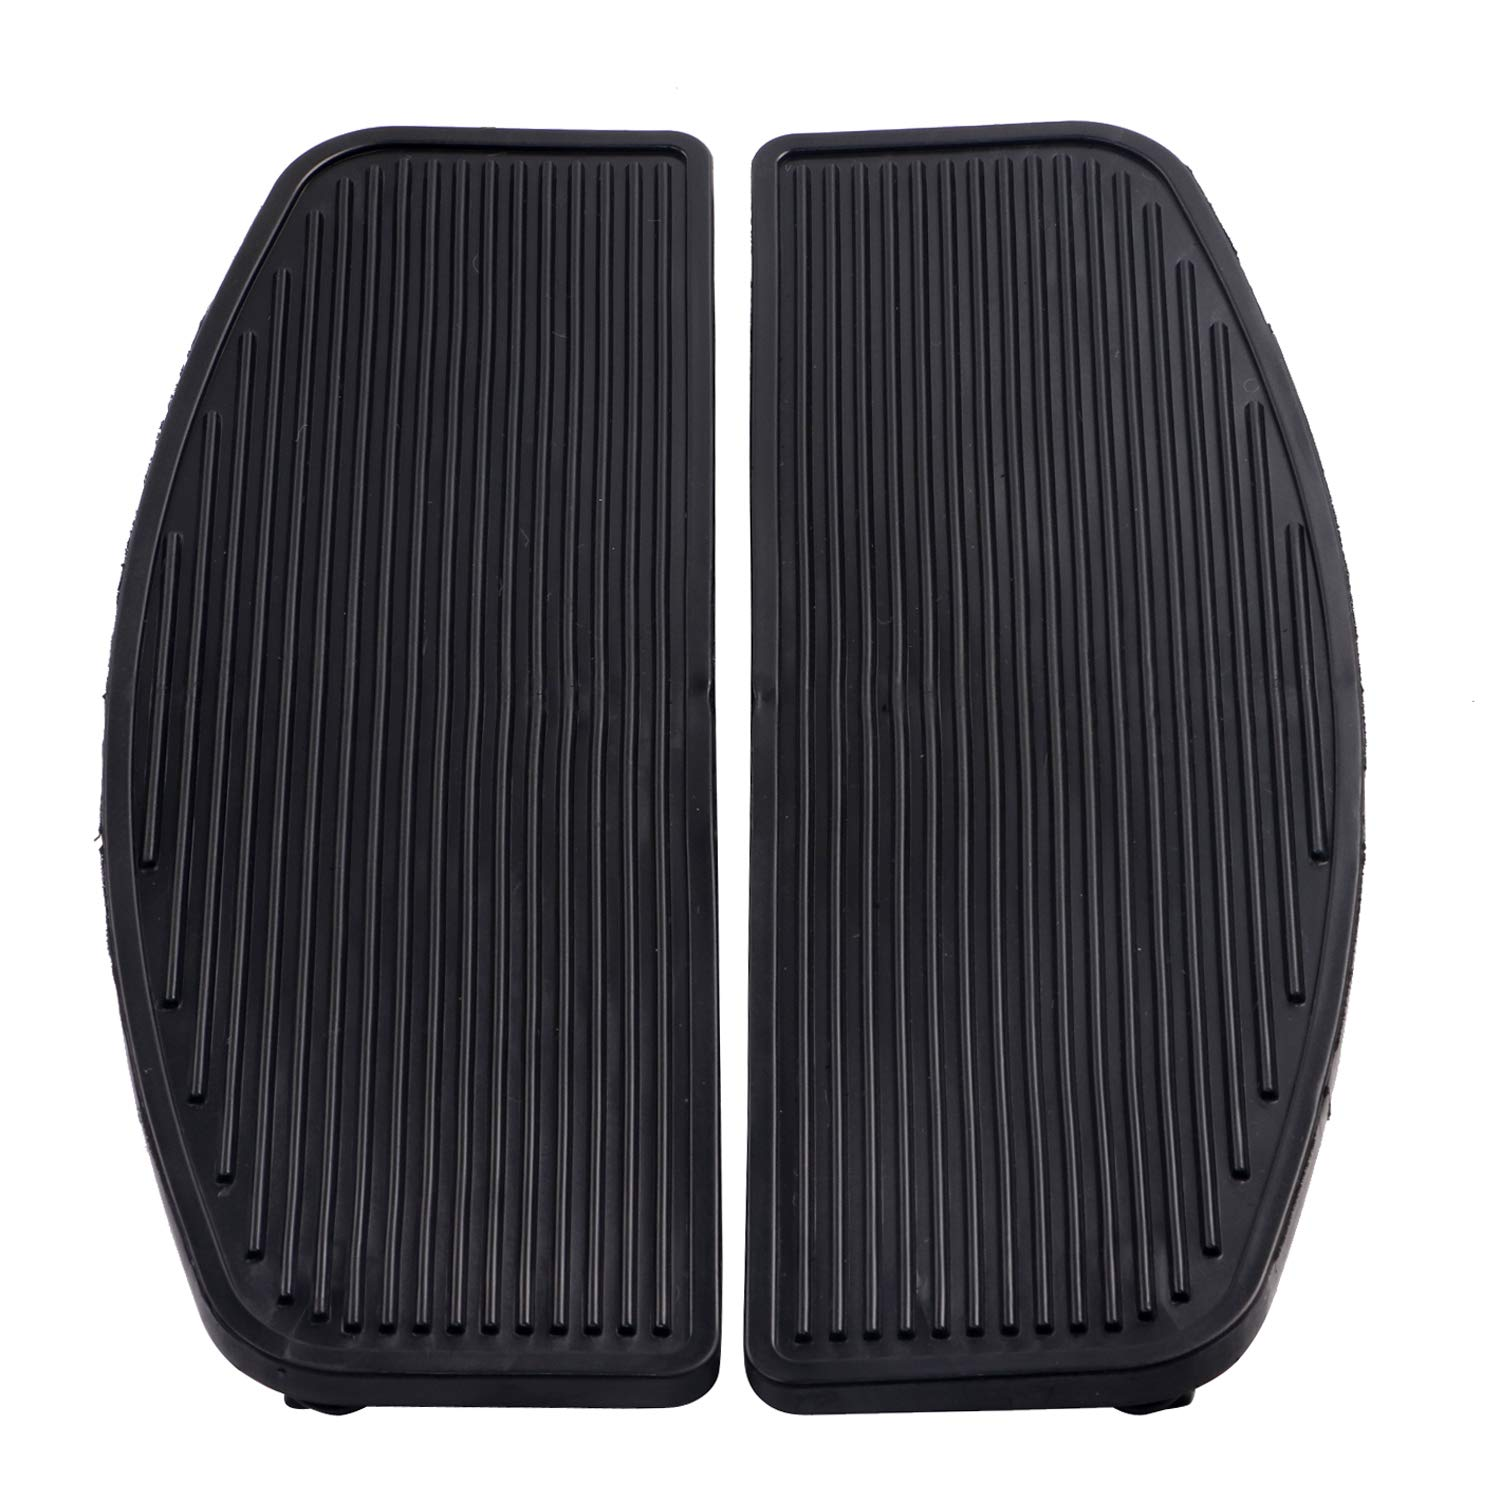 Rubber Front Rider Insert Floorboard Footpeg Footboards for Harley Touring Softail by XMMT